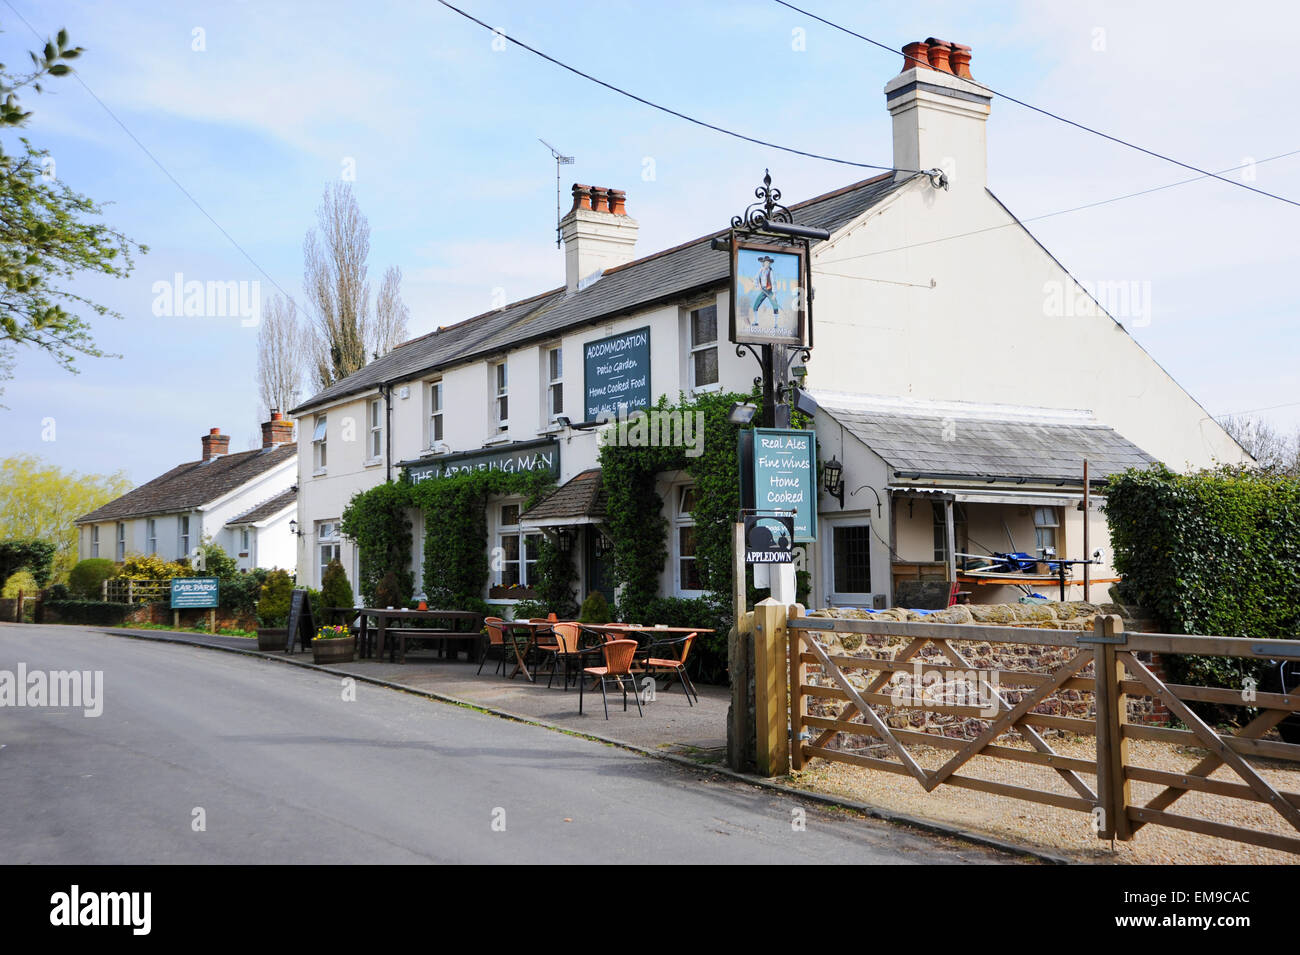 The Labouring Man pub in village at Coldwaltham near Pulborough West Sussex - Stock Image